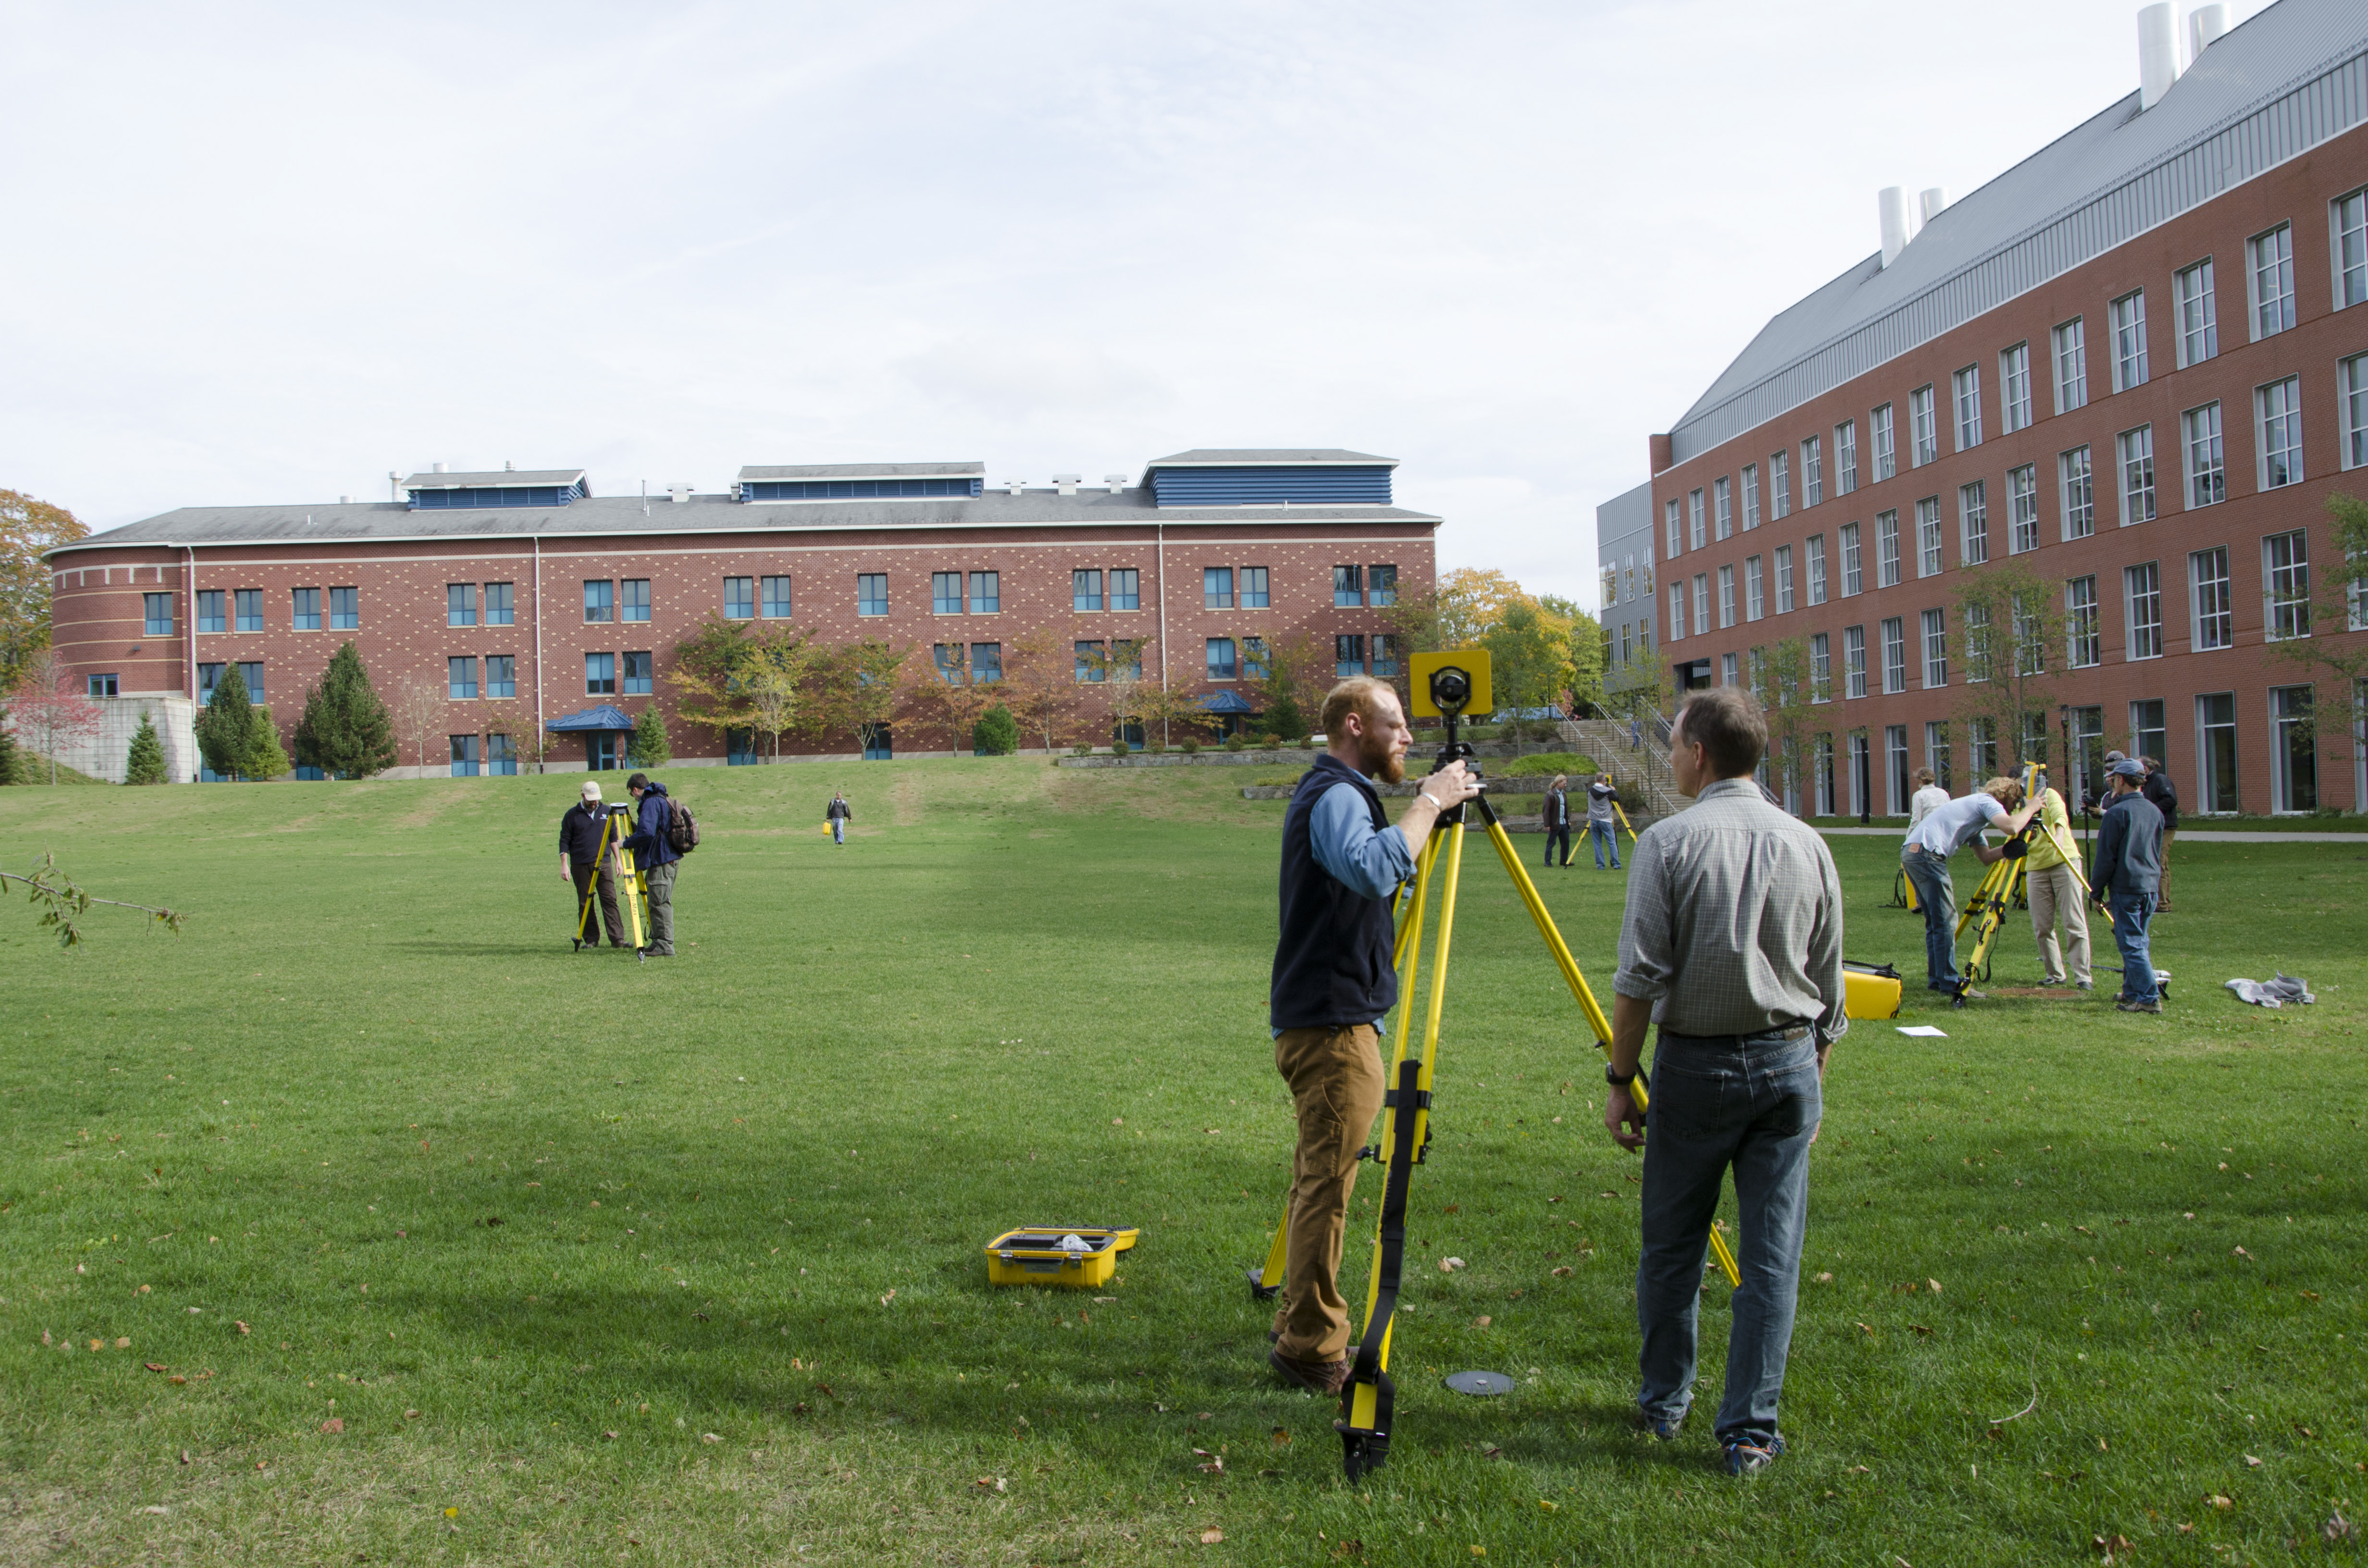 The new units are also significantly more accurate than models previously available to NPS staff. The lawn outside of the URI Coastal Institute, where the training took place, is similar in size to discrete park sites that are slated for elevation data collection. With older equipment, surveying an area this size would take several researchers weeks to complete, and results would be accurate to within centimeters. With the new equipment, the same survey will take one person only a day or two to complete and will offer results within millimeters of accuracy. NPS photo/E. Nicosia.